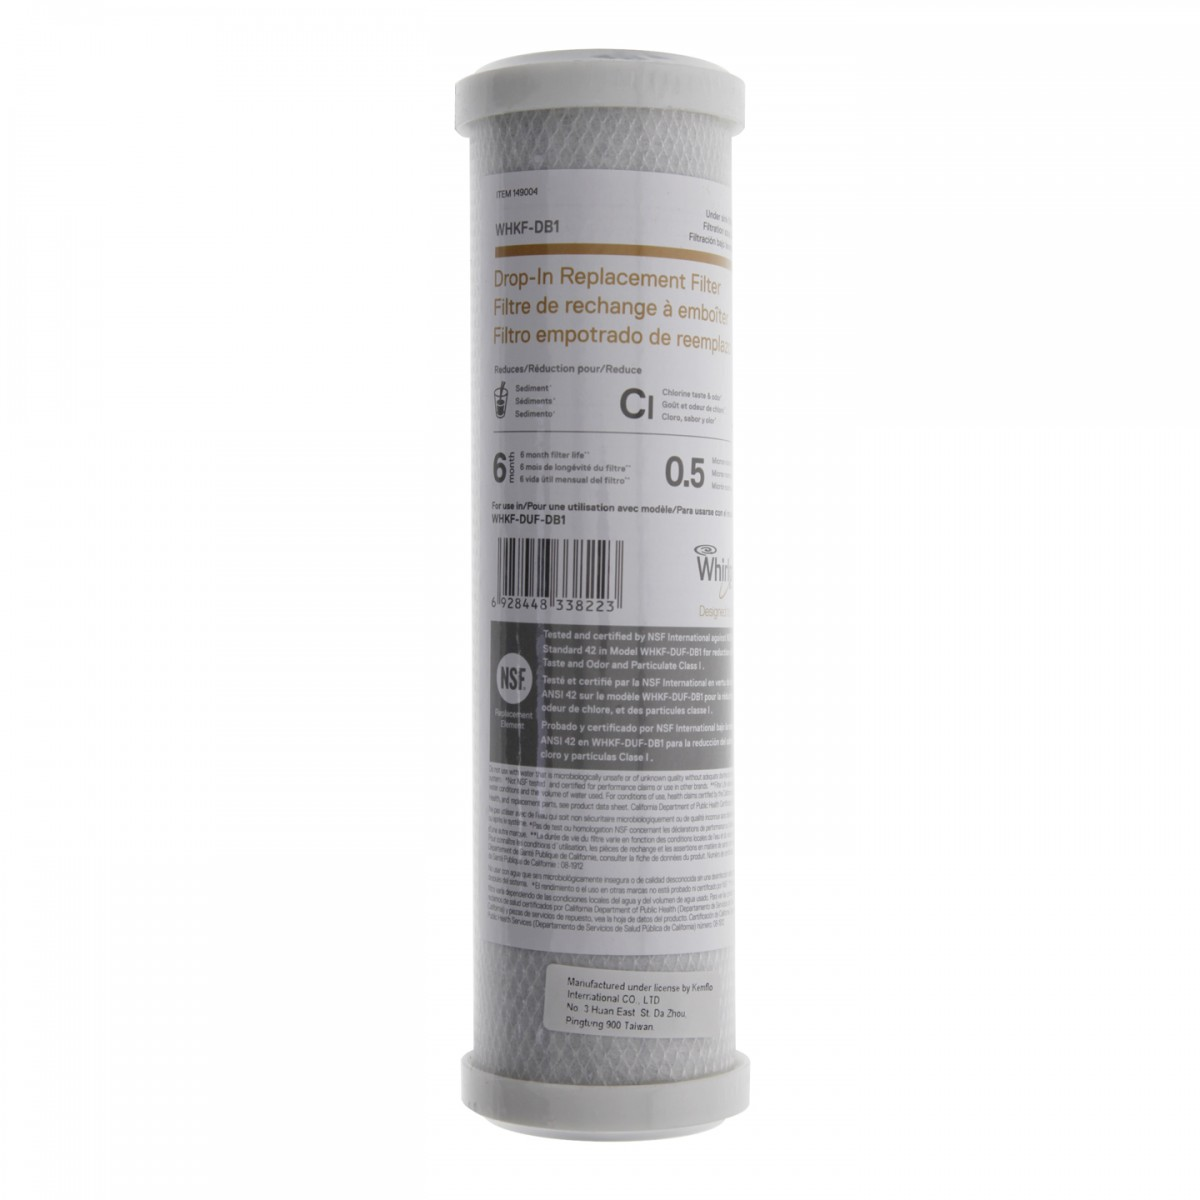 Whirlpool Whkf Db1 Under Sink Arbon Water Filter Cartridge